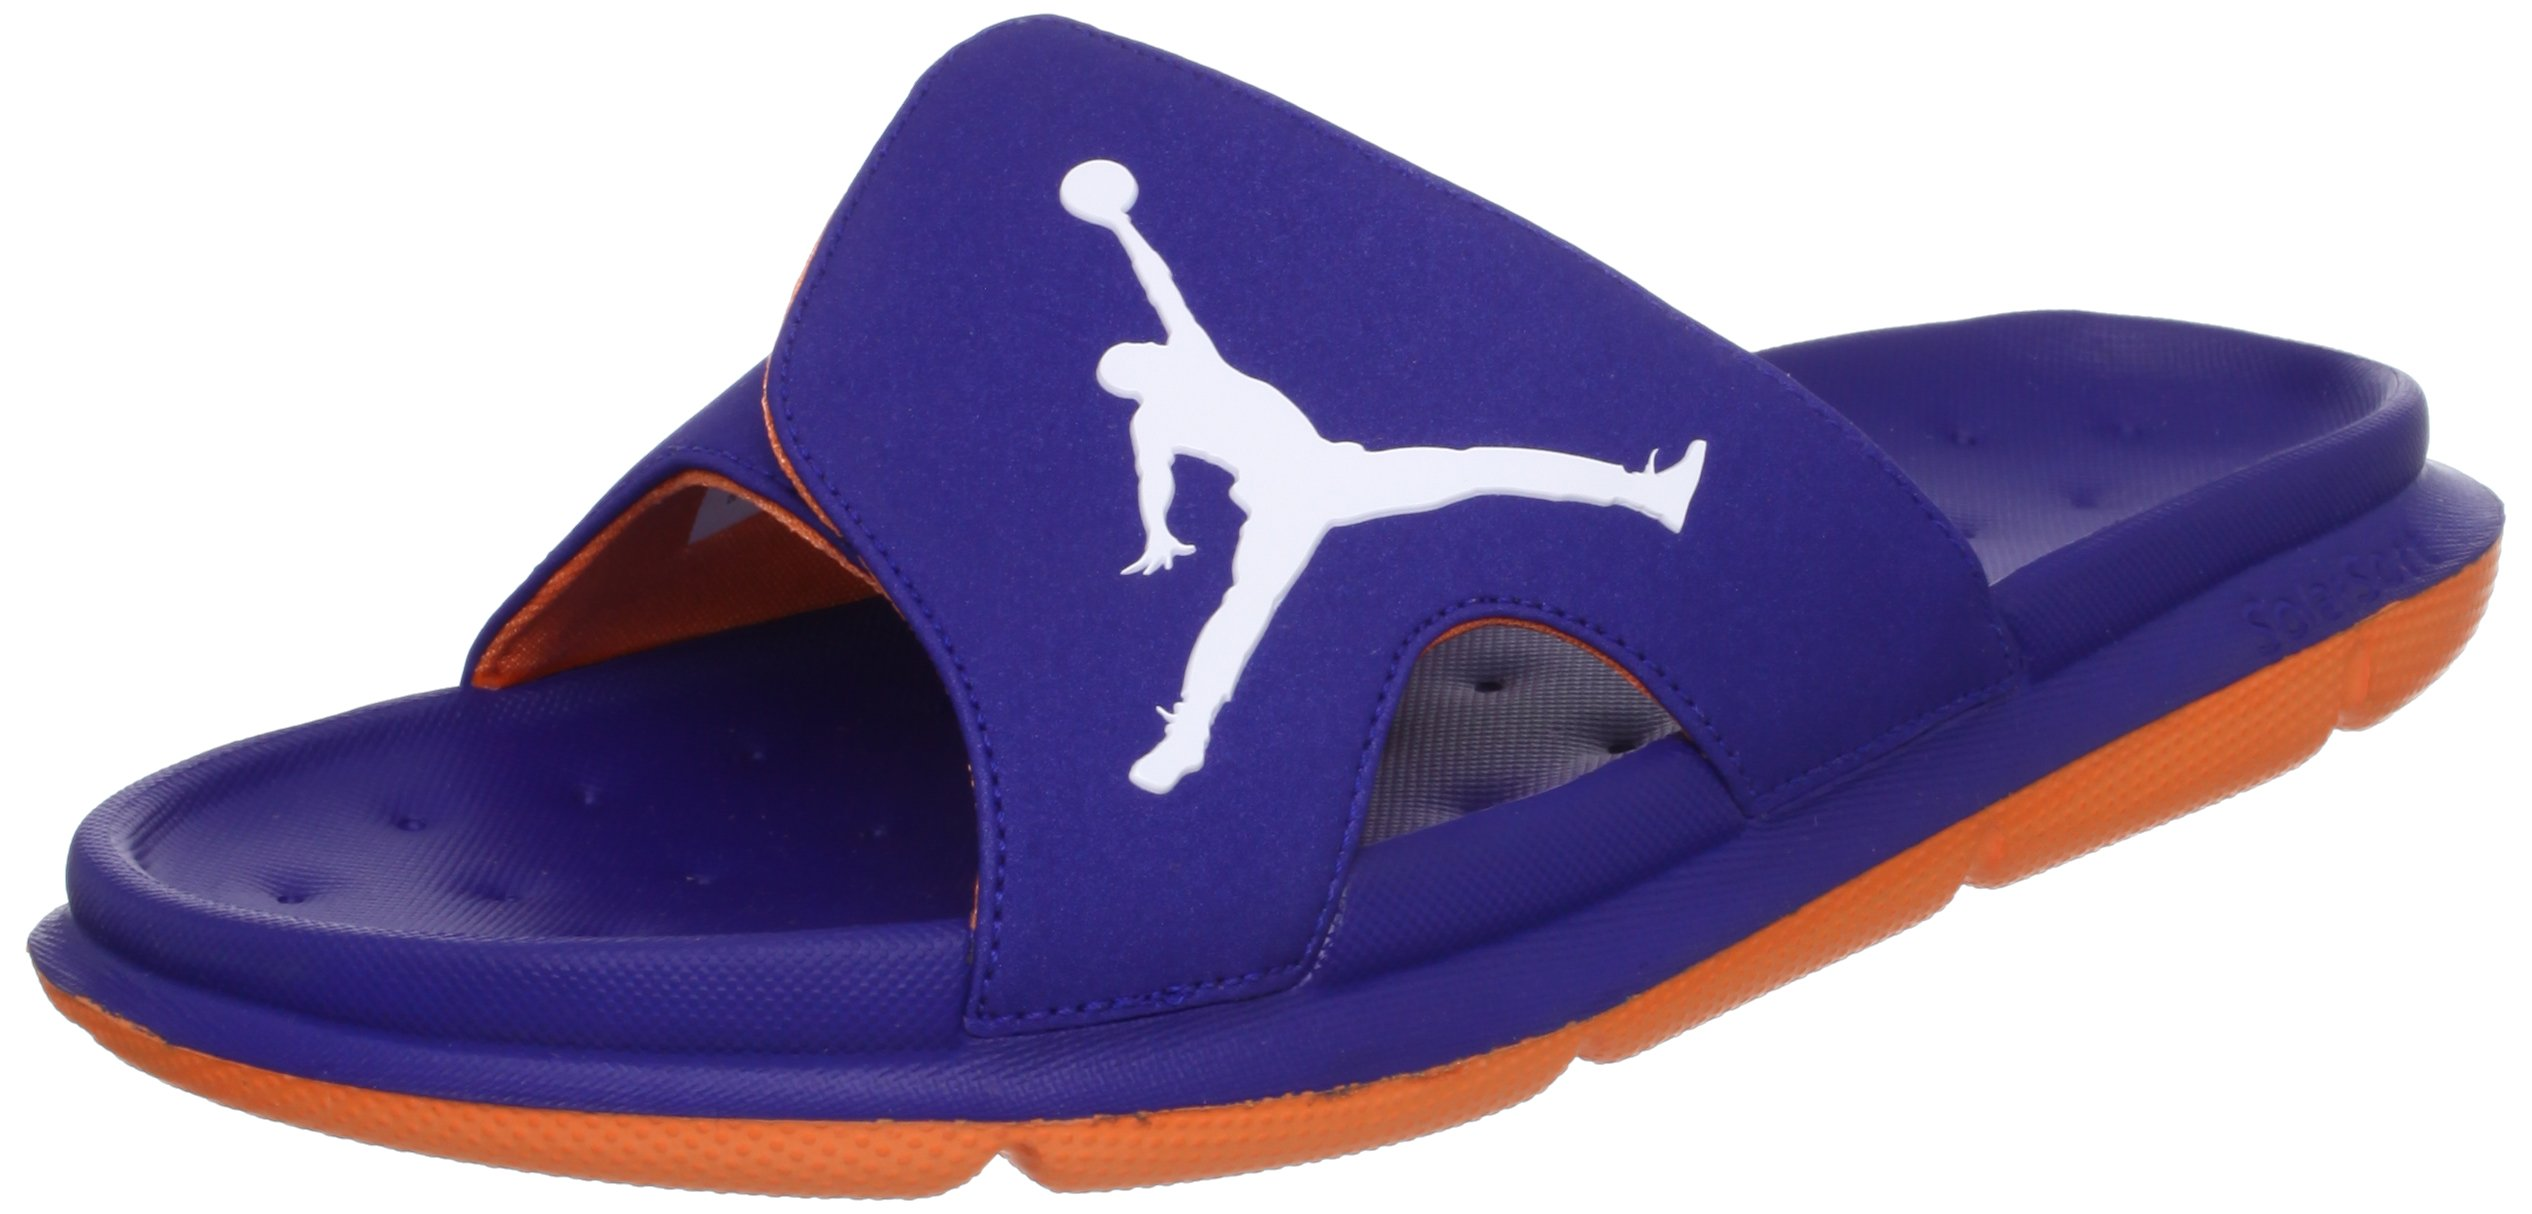 d466d5bb37ef73 Galleon - Nike Men s NIKE JORDAN RCVR SLIDE SELECT SANDALS 9 Men US (DP  ROYAL BLUE WHITE BRIGHT CTRS)